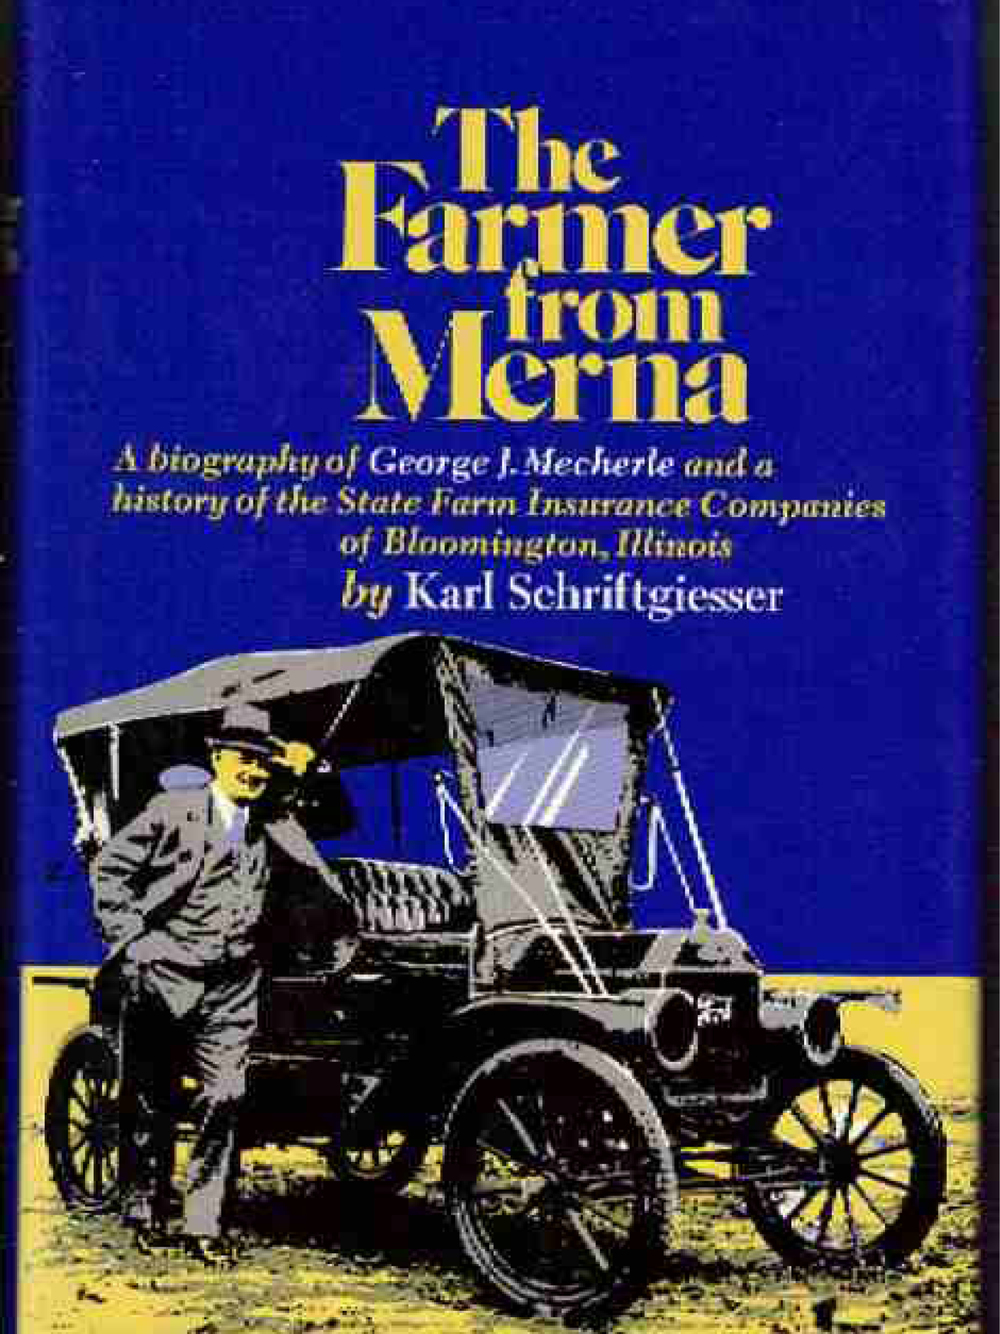 The Farmer from Merna: A Biography of George J. Mecherle and a History of the State Farm Insurance Companies of Bloomington, Illinois Karl Schriftgeisser 1996